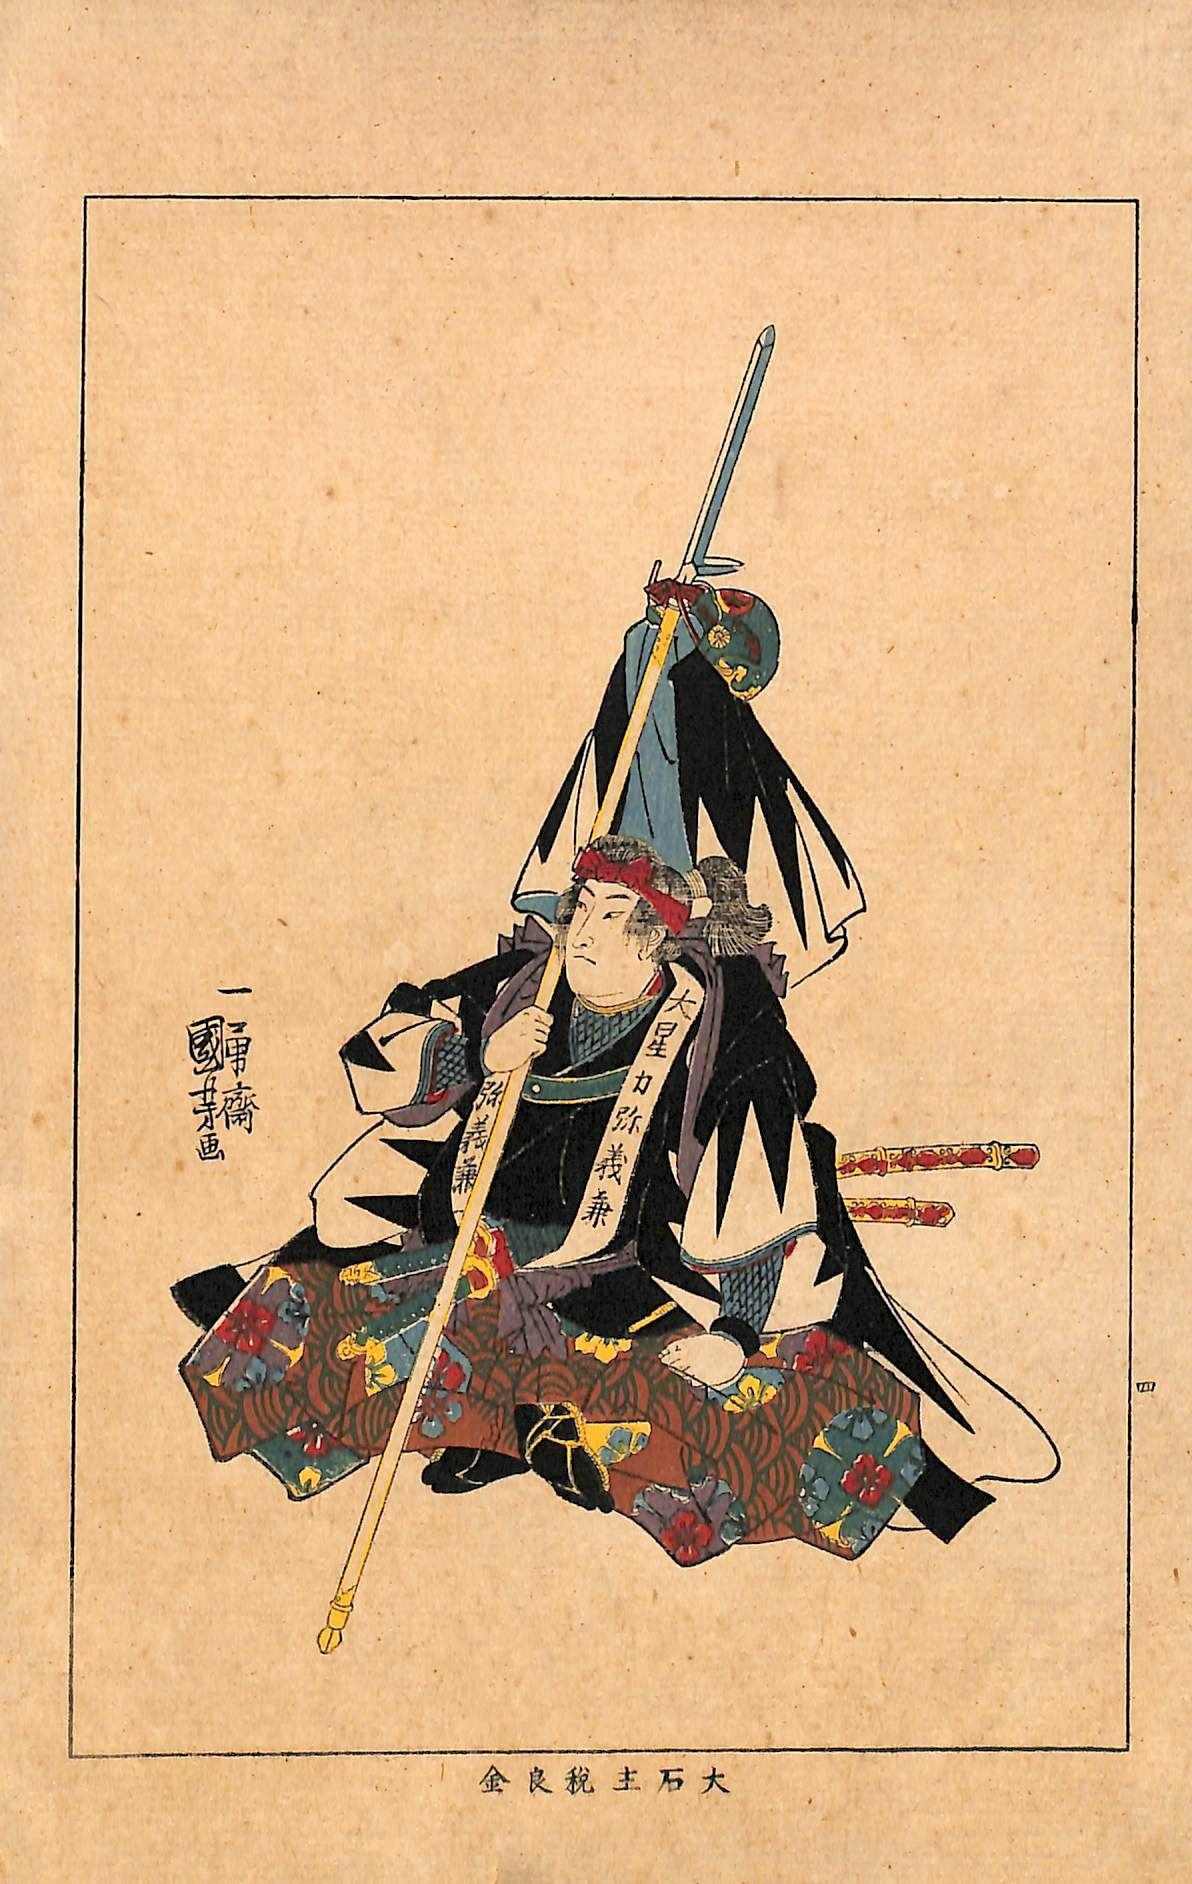 Artist: Utagawa Kuniyoshi Date: Taisho era, 9th year (1920) Title of Book: Seichu Gishiden (Stories of the true loyalty of the faithful samurai) Condition: Very good condition with some typical age toning Size: 9.5″ height x 6″ width Description: 100% genuine & authentic ukiyo-e Japanese Woodblock Print from the Taisho Period, 1920. Very good color and impression. A wonderful print of a ronin samurai by the famous artist Utagawa Kuniyoshi, No. 4 of 50. Bonus: Receive for free with purchase…